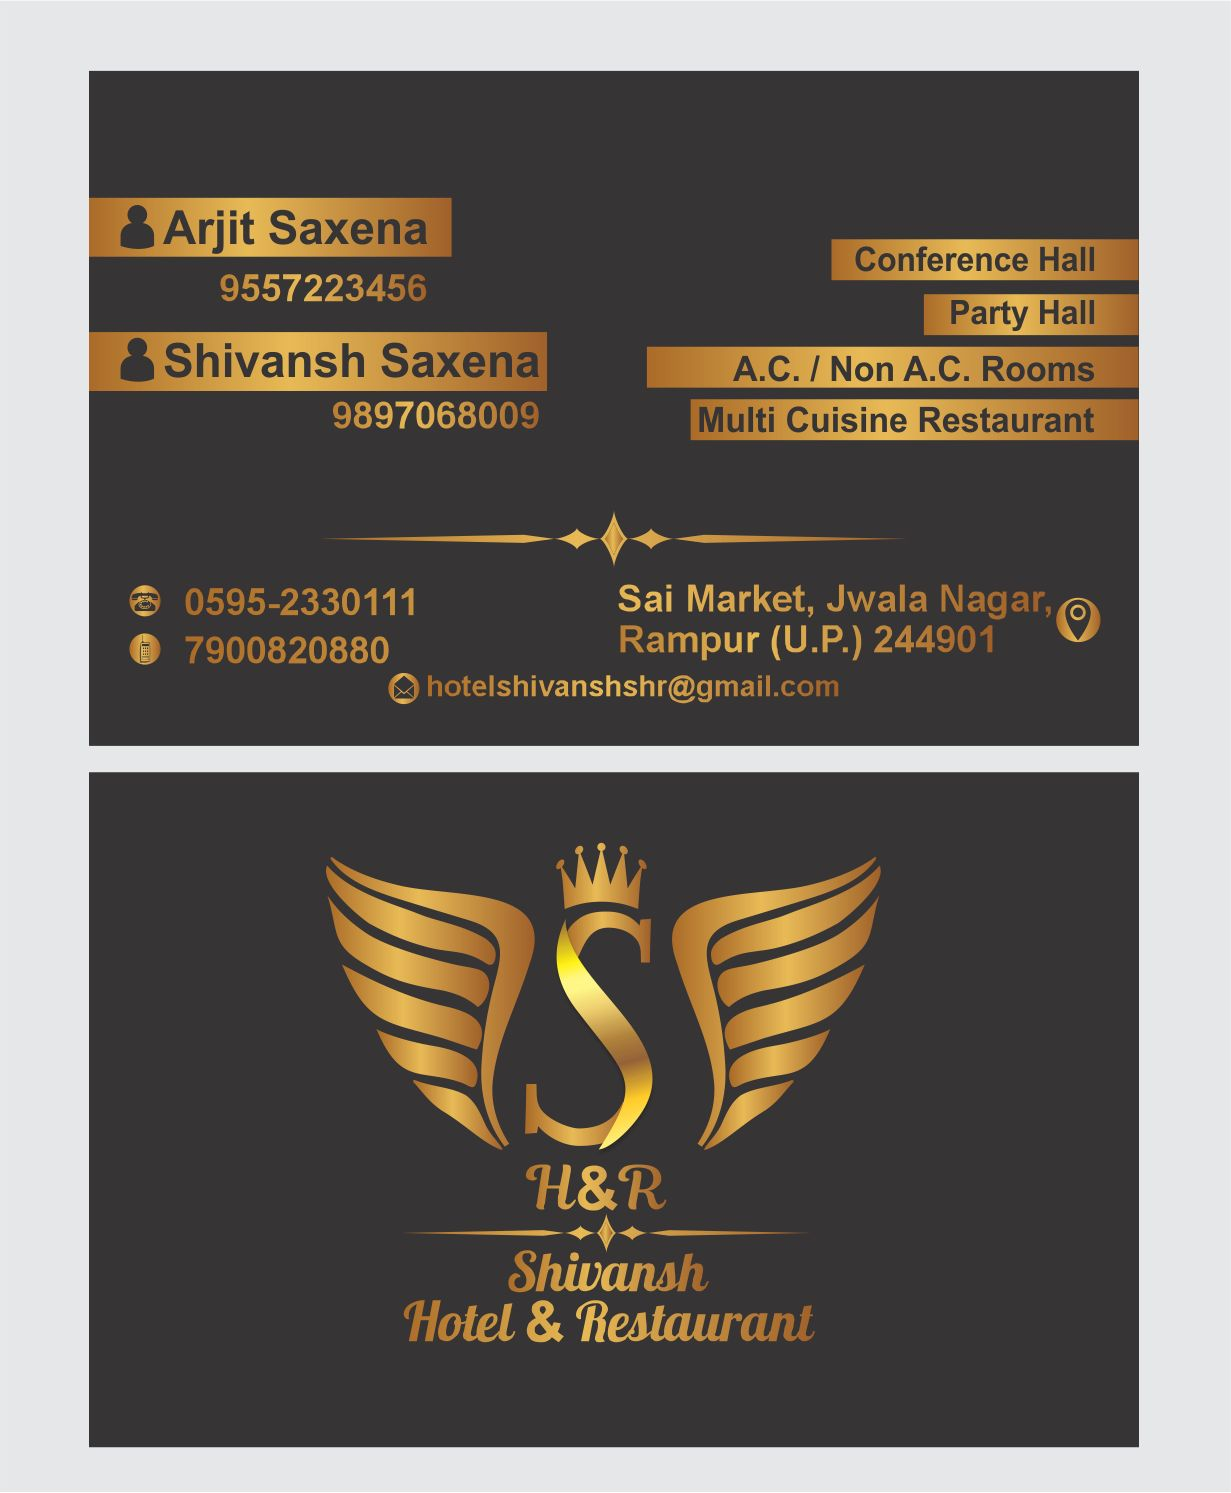 Hotel shivansh visiting card or business card cdr file free download hotel visiting card design vector cdr free download reheart Gallery